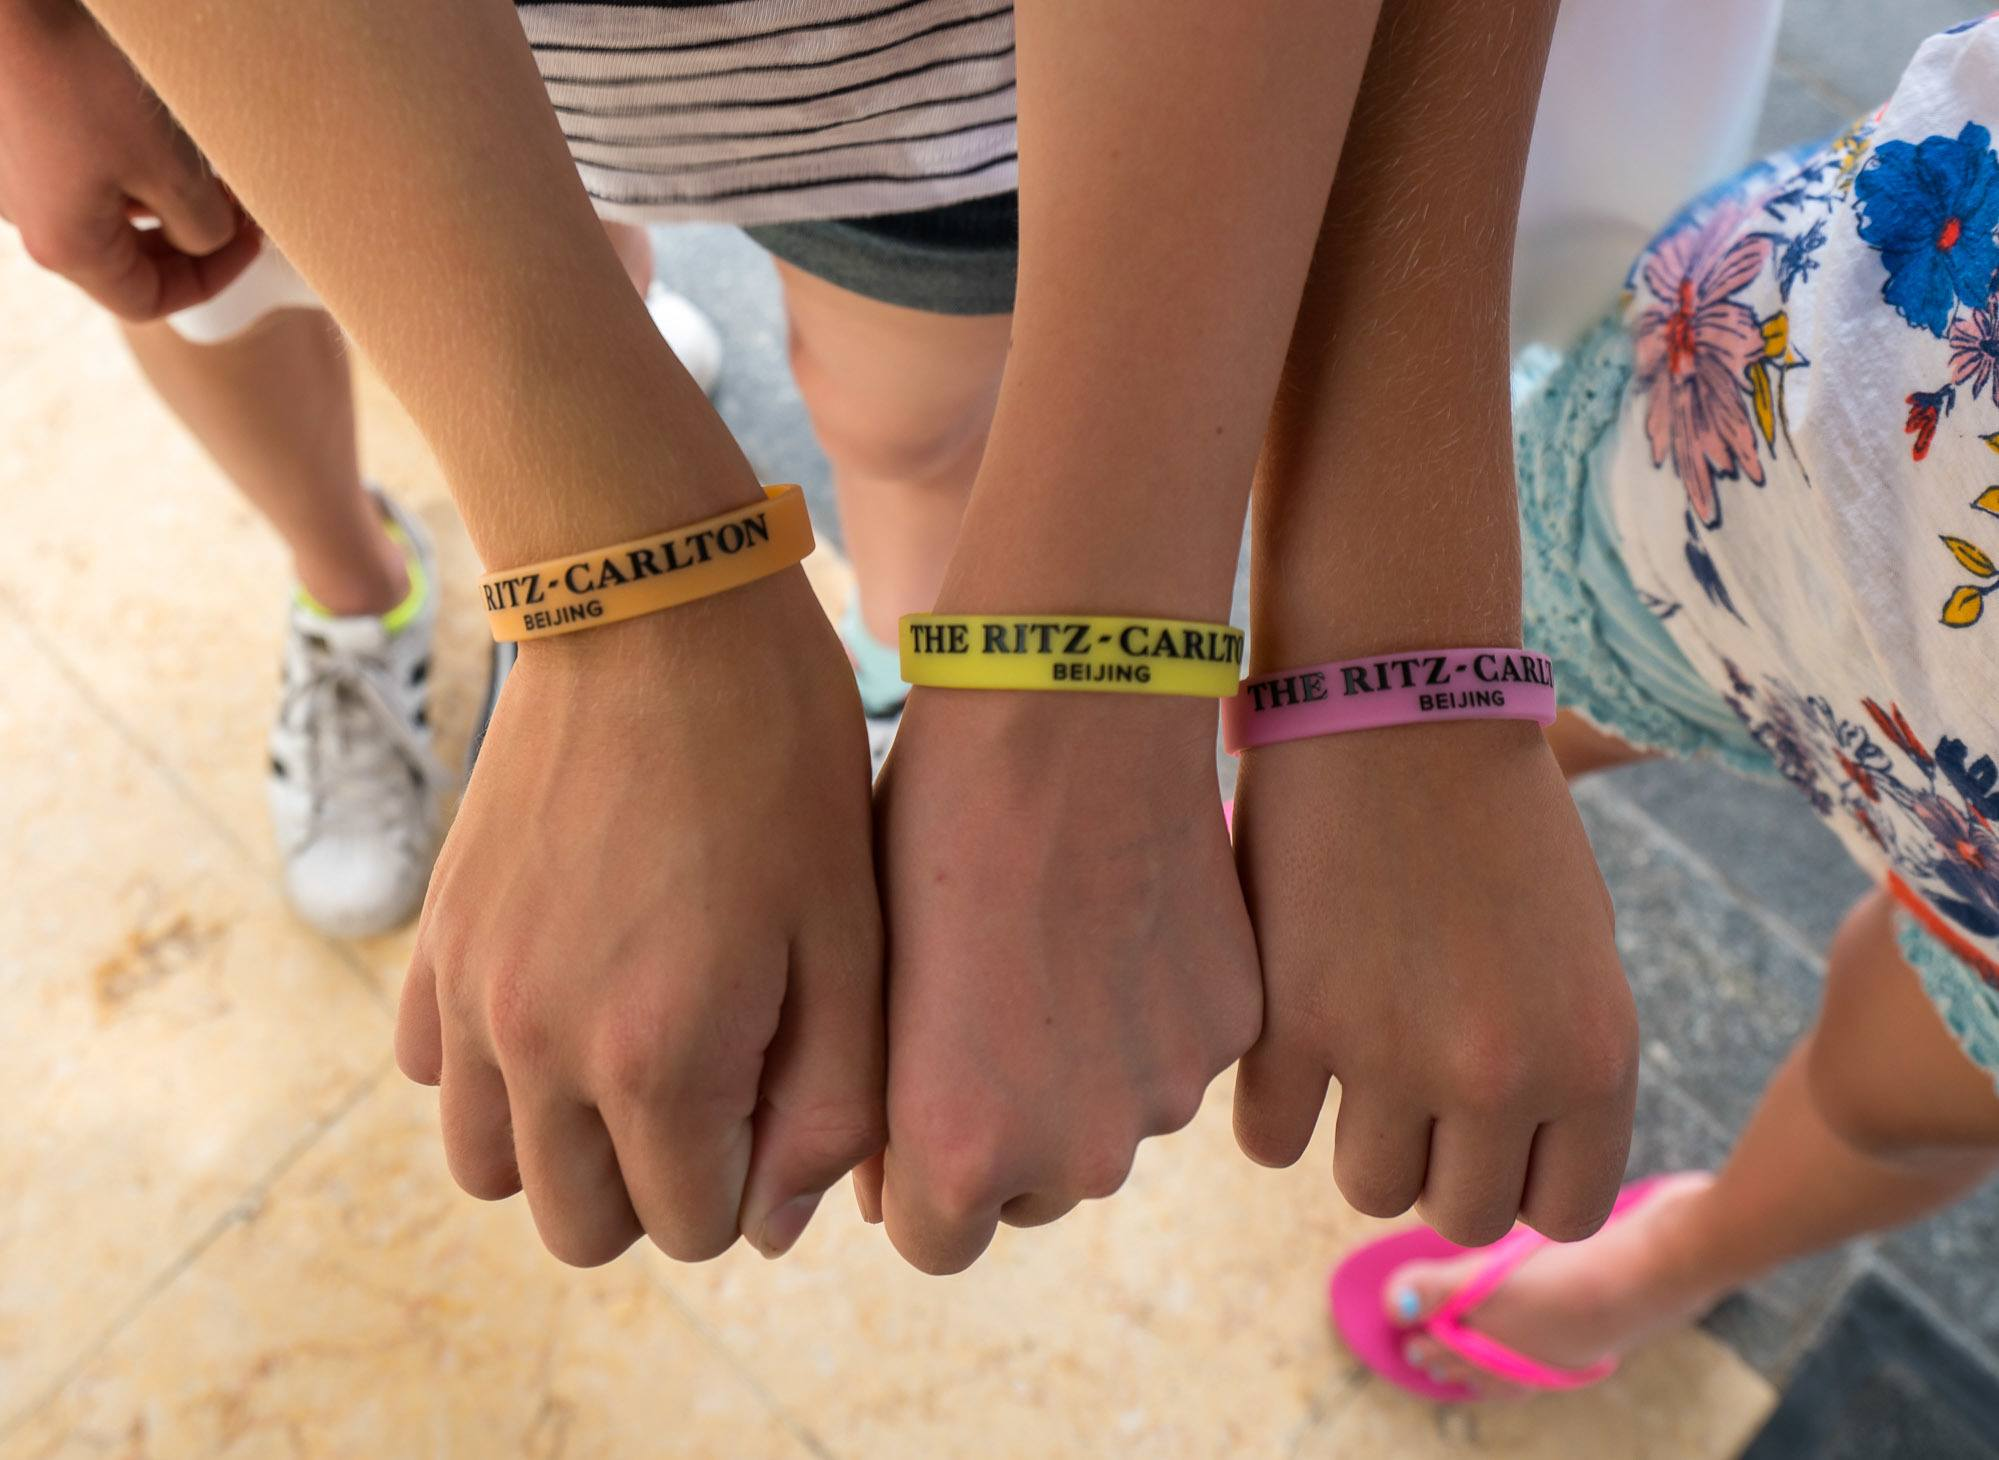 Ritz Kids wristbands at The Ritz-Carlton, Beijing